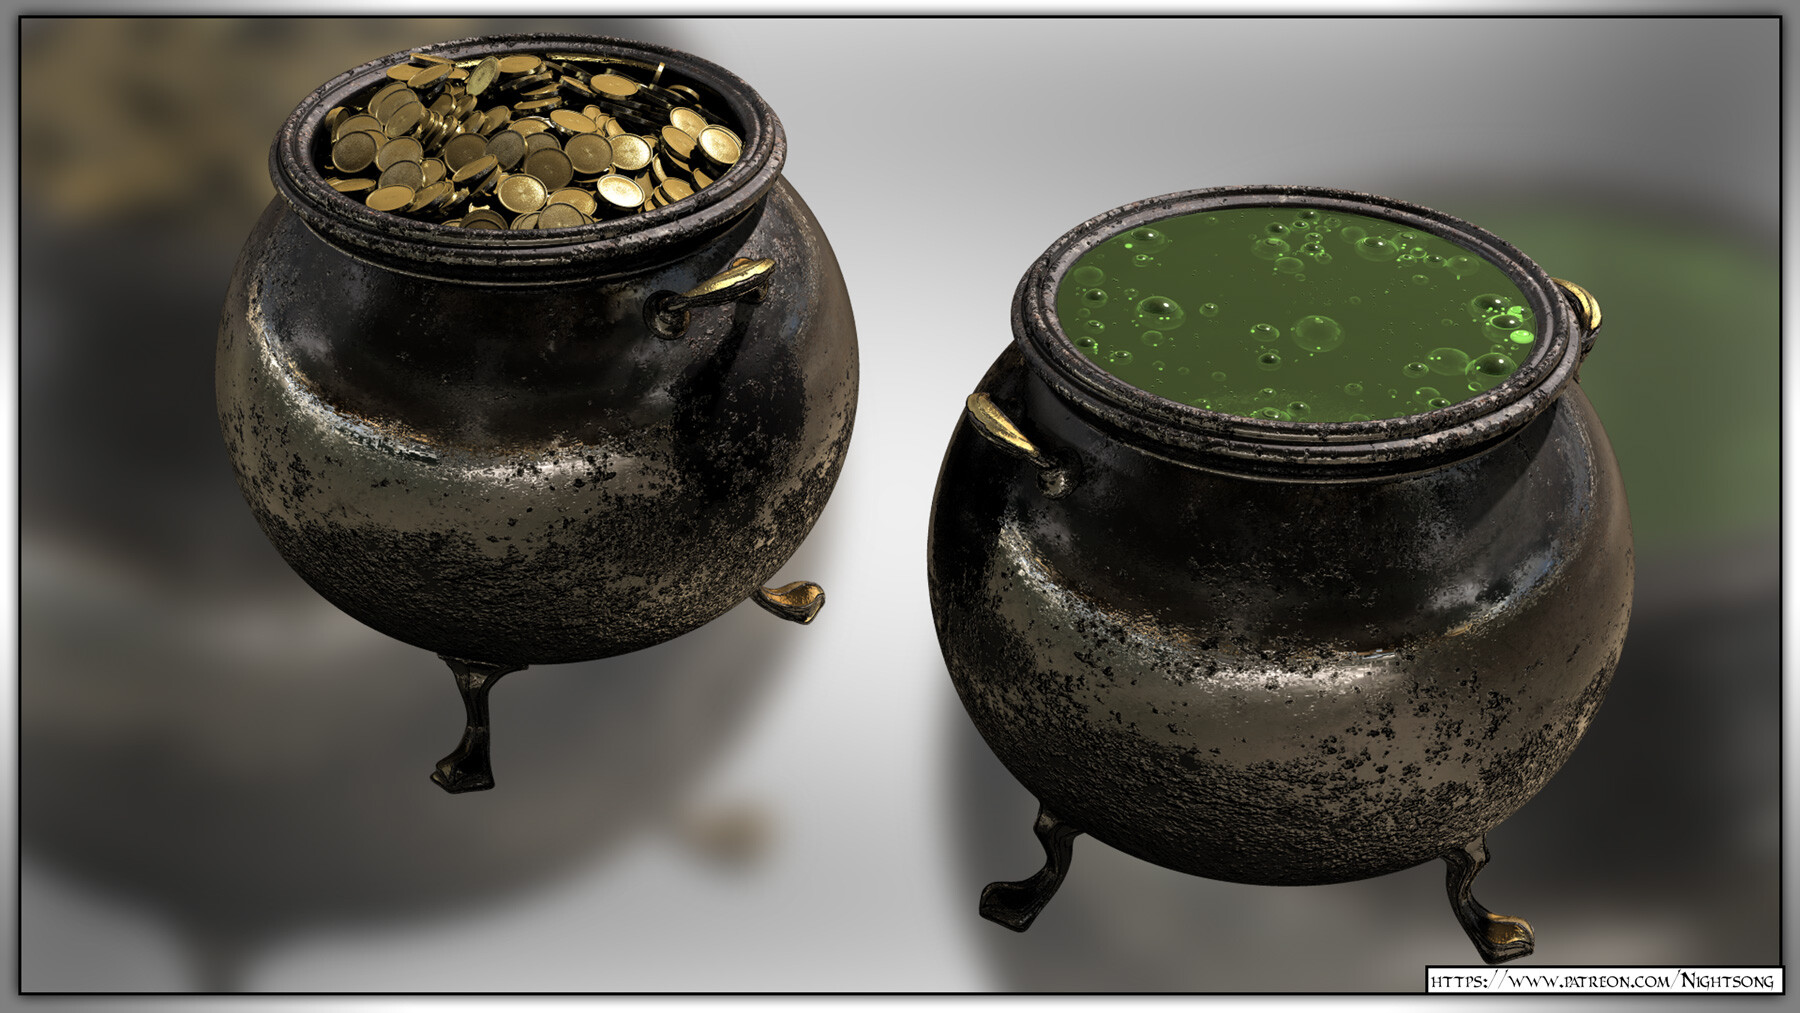 This shows both of the cauldrons.